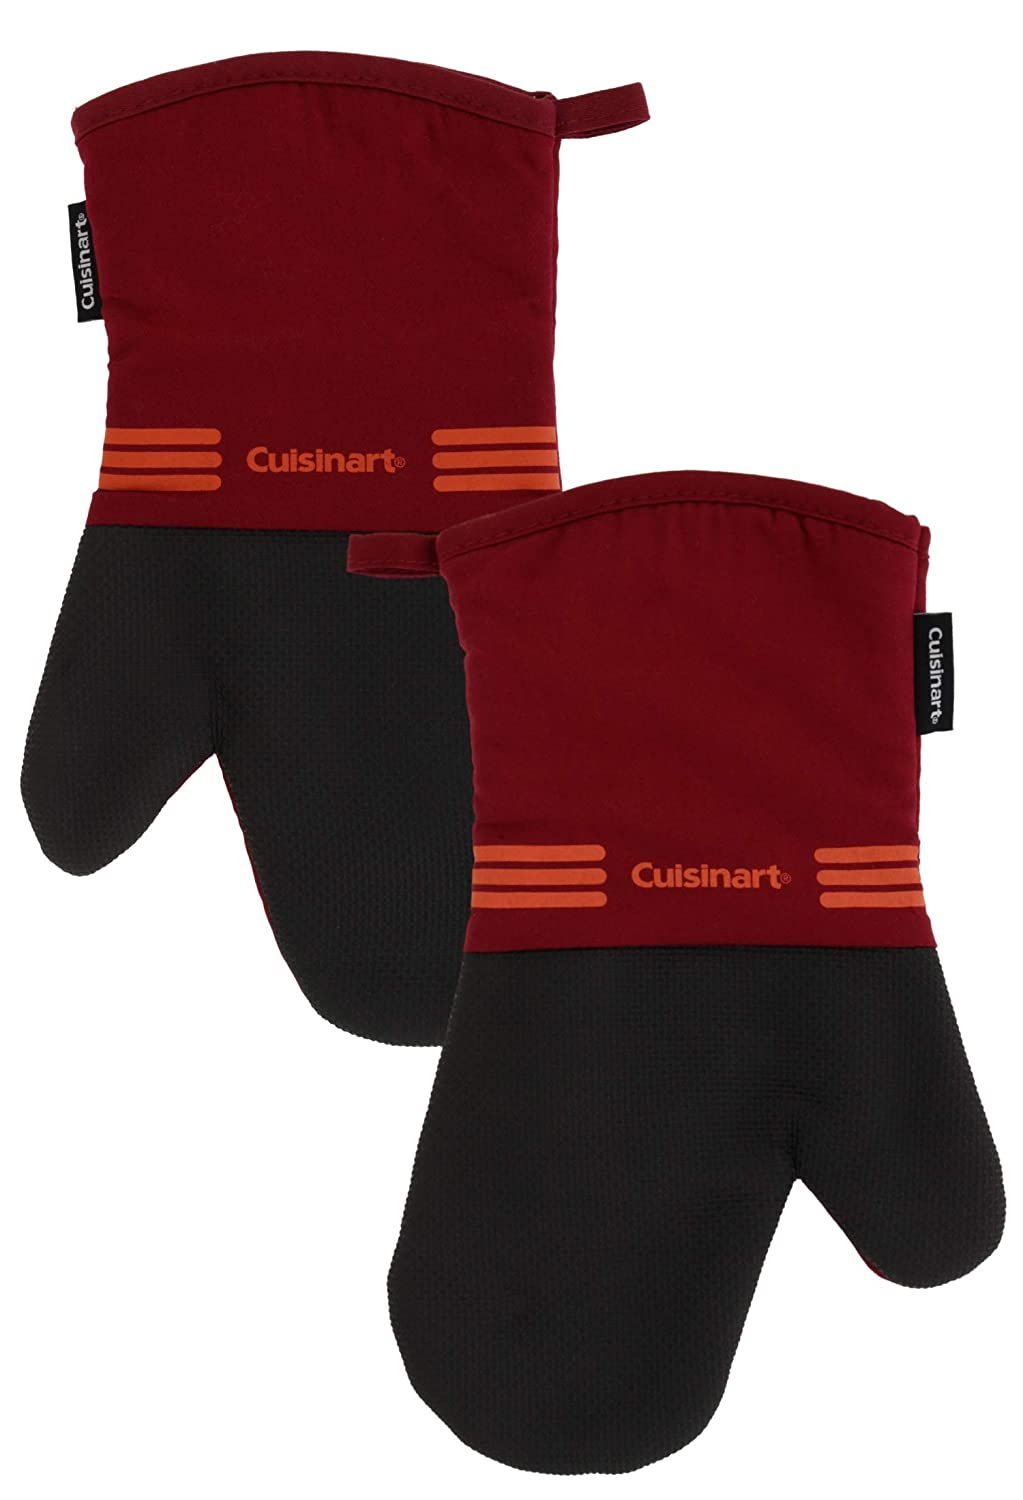 Cuisinart Oven Mitt Set with Neoprene for Easy Gripping, Heat Resistant up to 500 Degrees F, Salsa Red